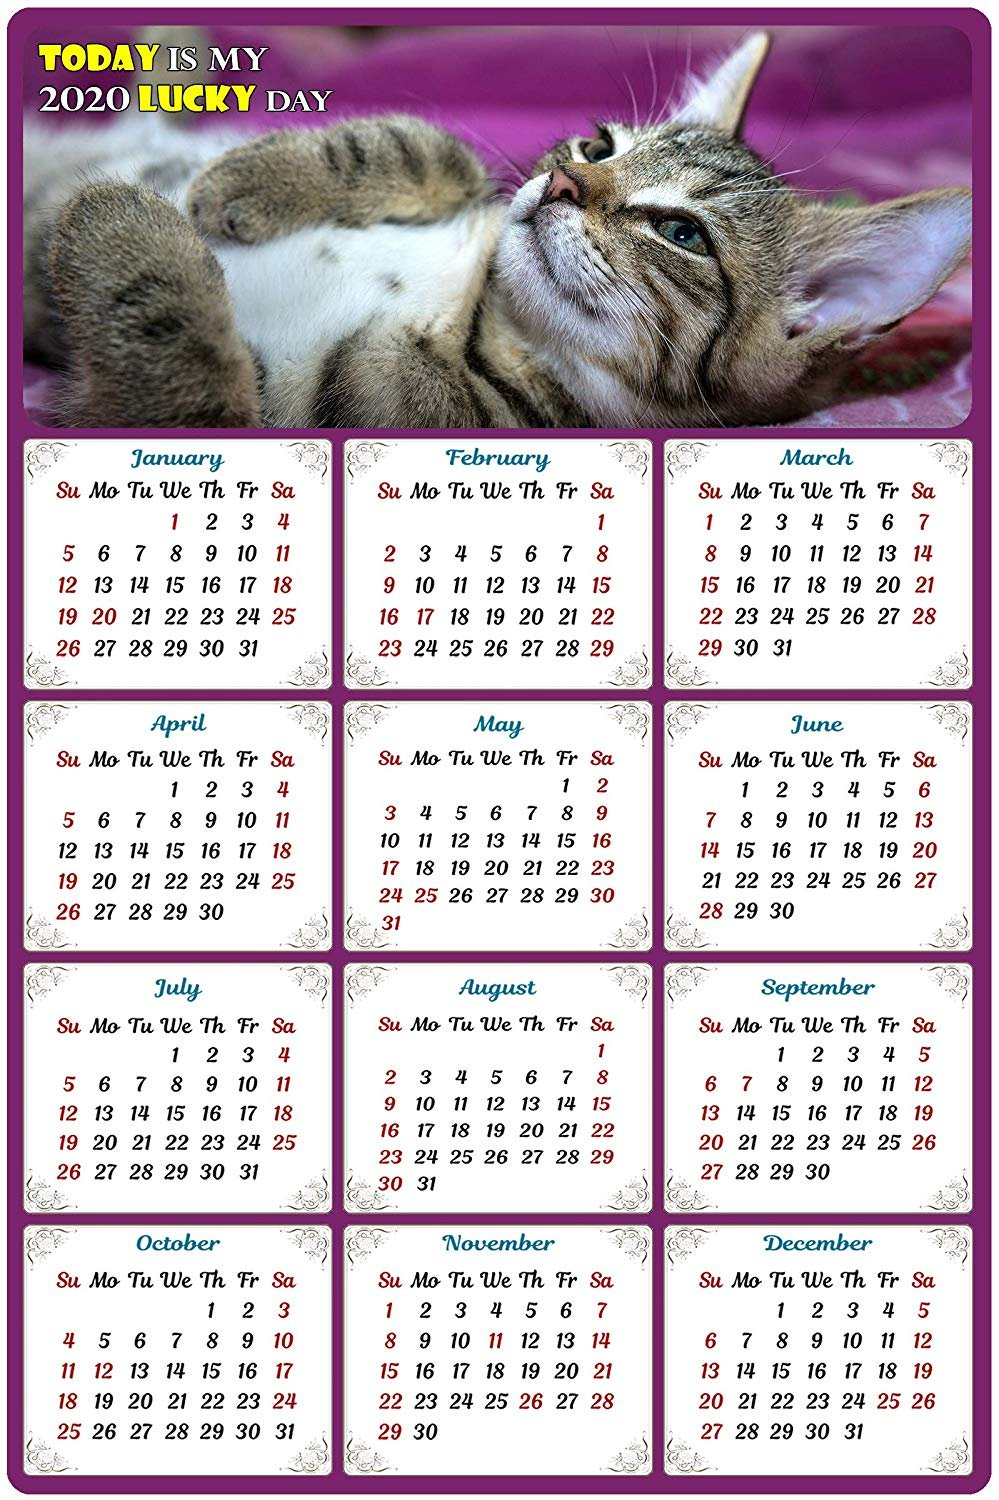 2020 Magnetic Calendar - Calendar Magnets - Today is My Lucky Day - Cat Themed 8